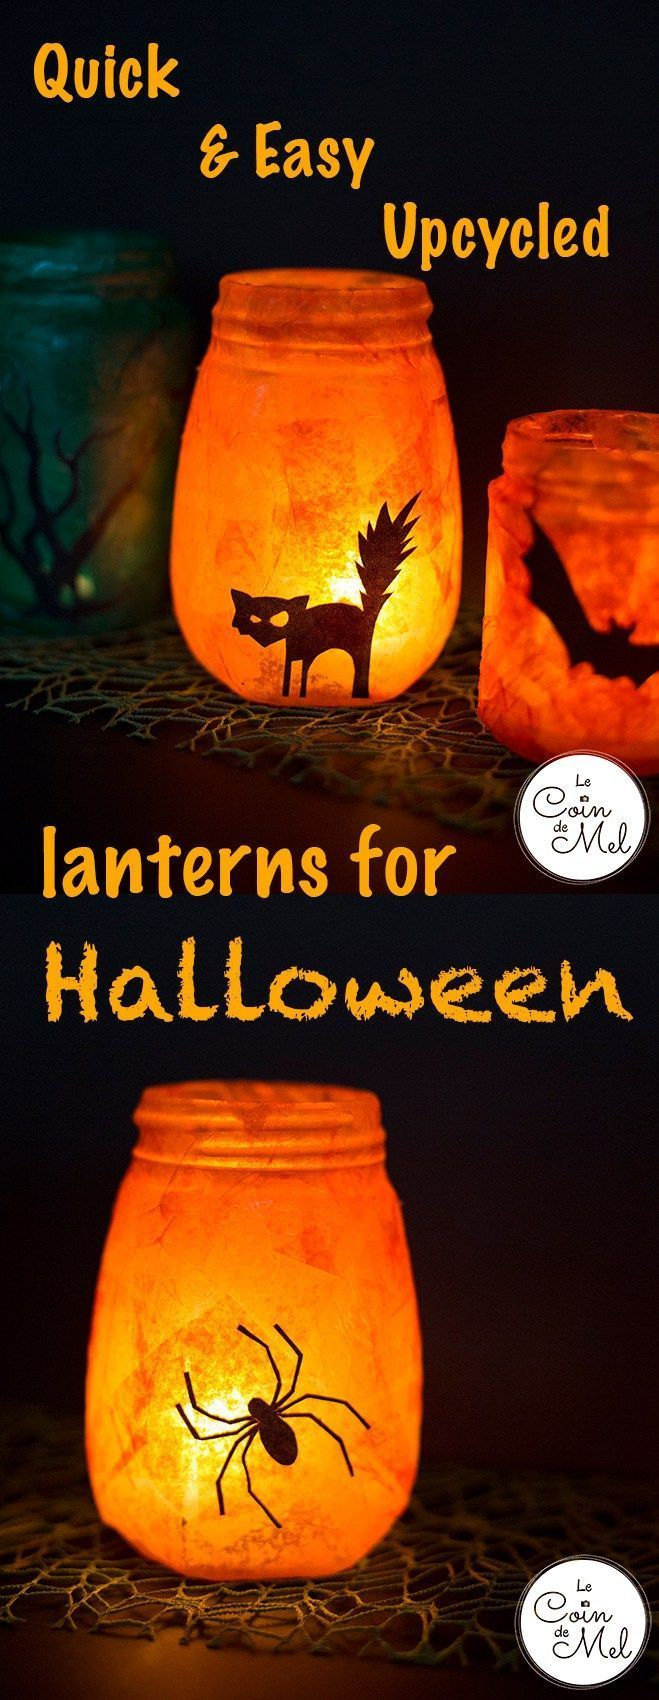 Upcycled Halloween Lanterns - 10 Minute Crafts - Le Coin De Mel